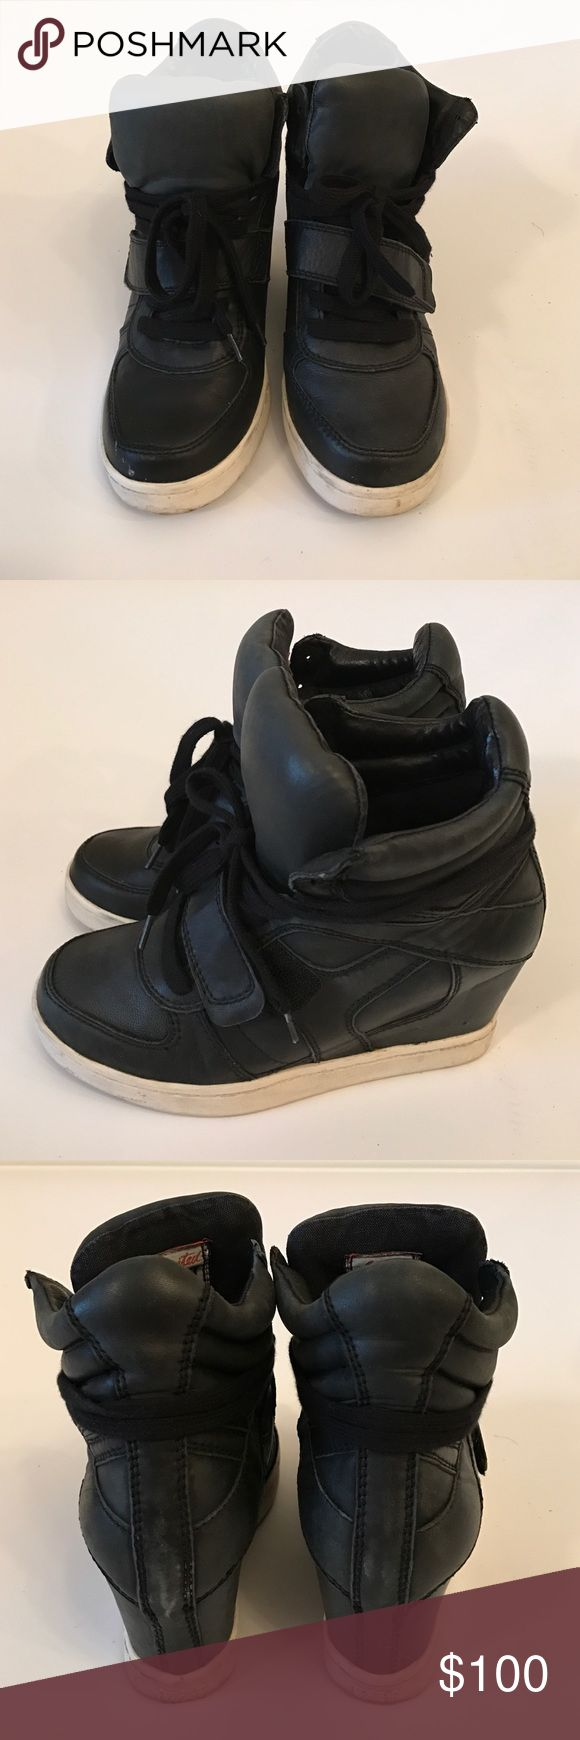 "Ash Bowie black leather heel sneakers in size 37 Worn gently. Ash black leather platform sneakers in size 37.  The heel measures 2"" purchased them from shopbop! Comes without the box. Ash Shoes Sneakers"